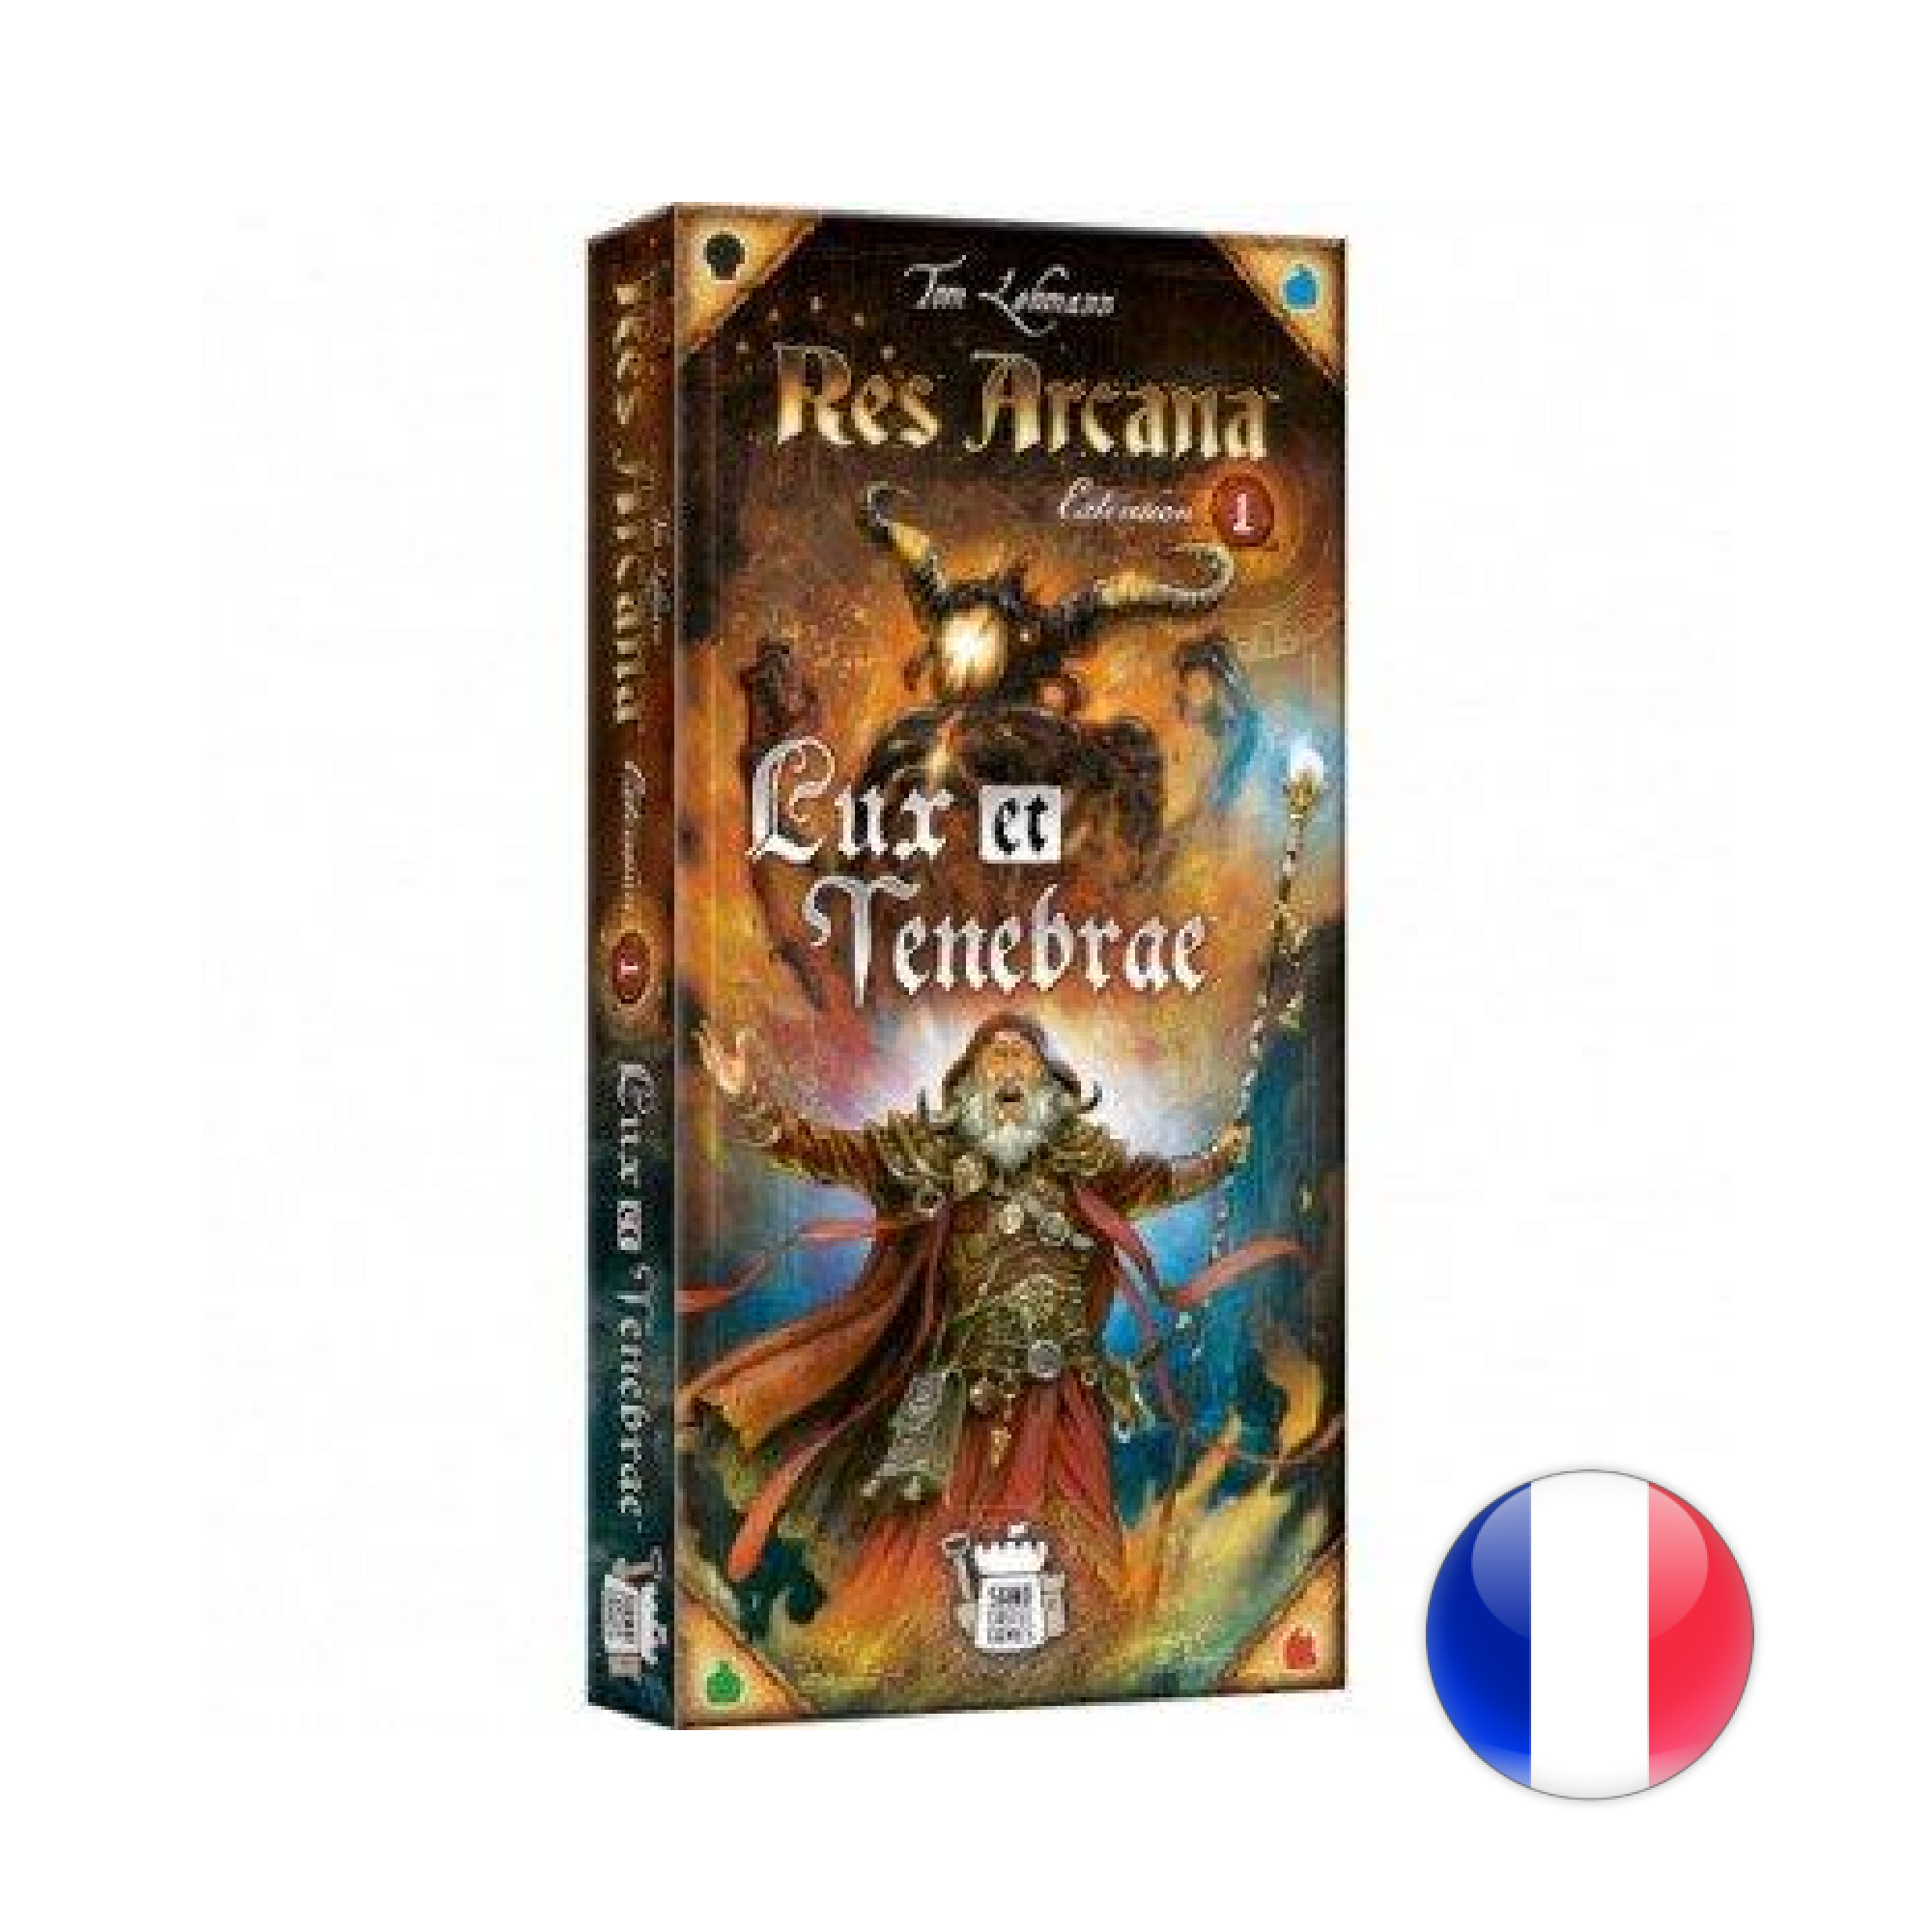 Sand Castle games Res Arcana Ext. Lux & Tenebrae VF